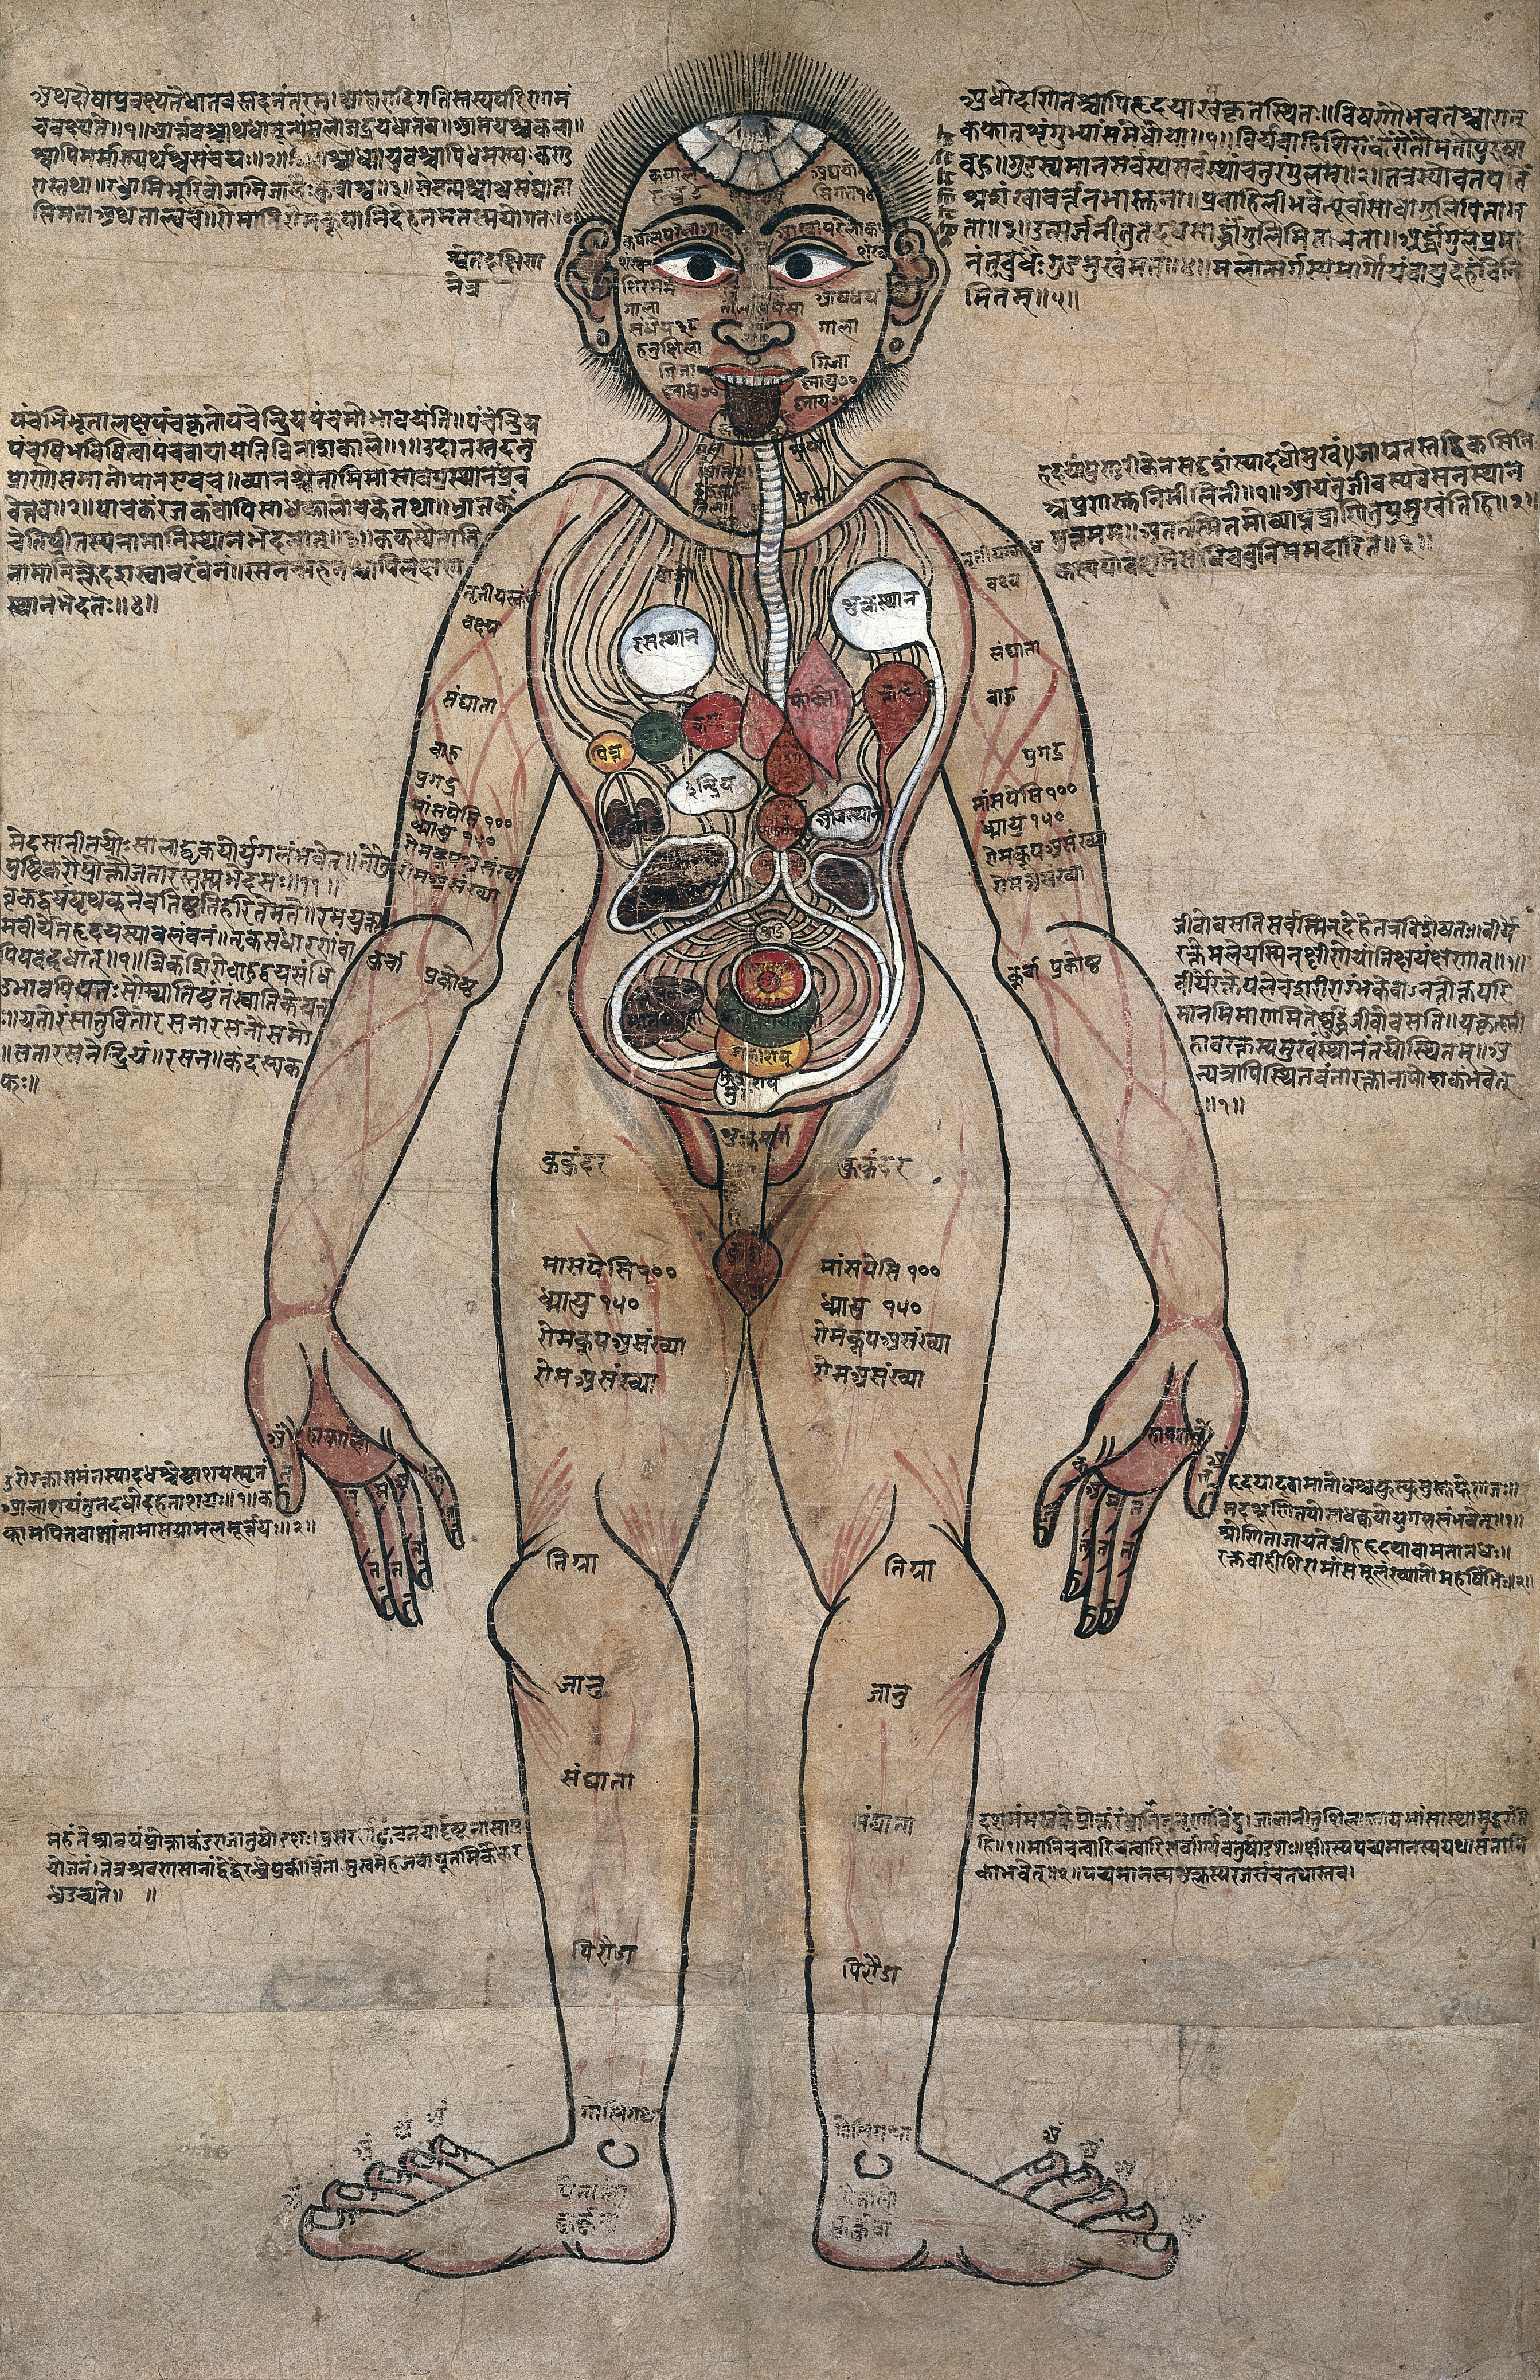 L0017592 The Ayurvedic Man., c.18th century Credit: Wellcome Library, London. Wellcome Images images@wellcome.ac.uk http://wellcomeimages.org Anatomical study of a man standing with Nepalese and Sanskrit texts showing the Ayurvedic understanding of the human anatomy. Pen and watercolour c. 18th Century Published: - Copyrighted work available under Creative Commons Attribution only licence CC BY 4.0 http://creativecommons.org/licenses/by/4.0/